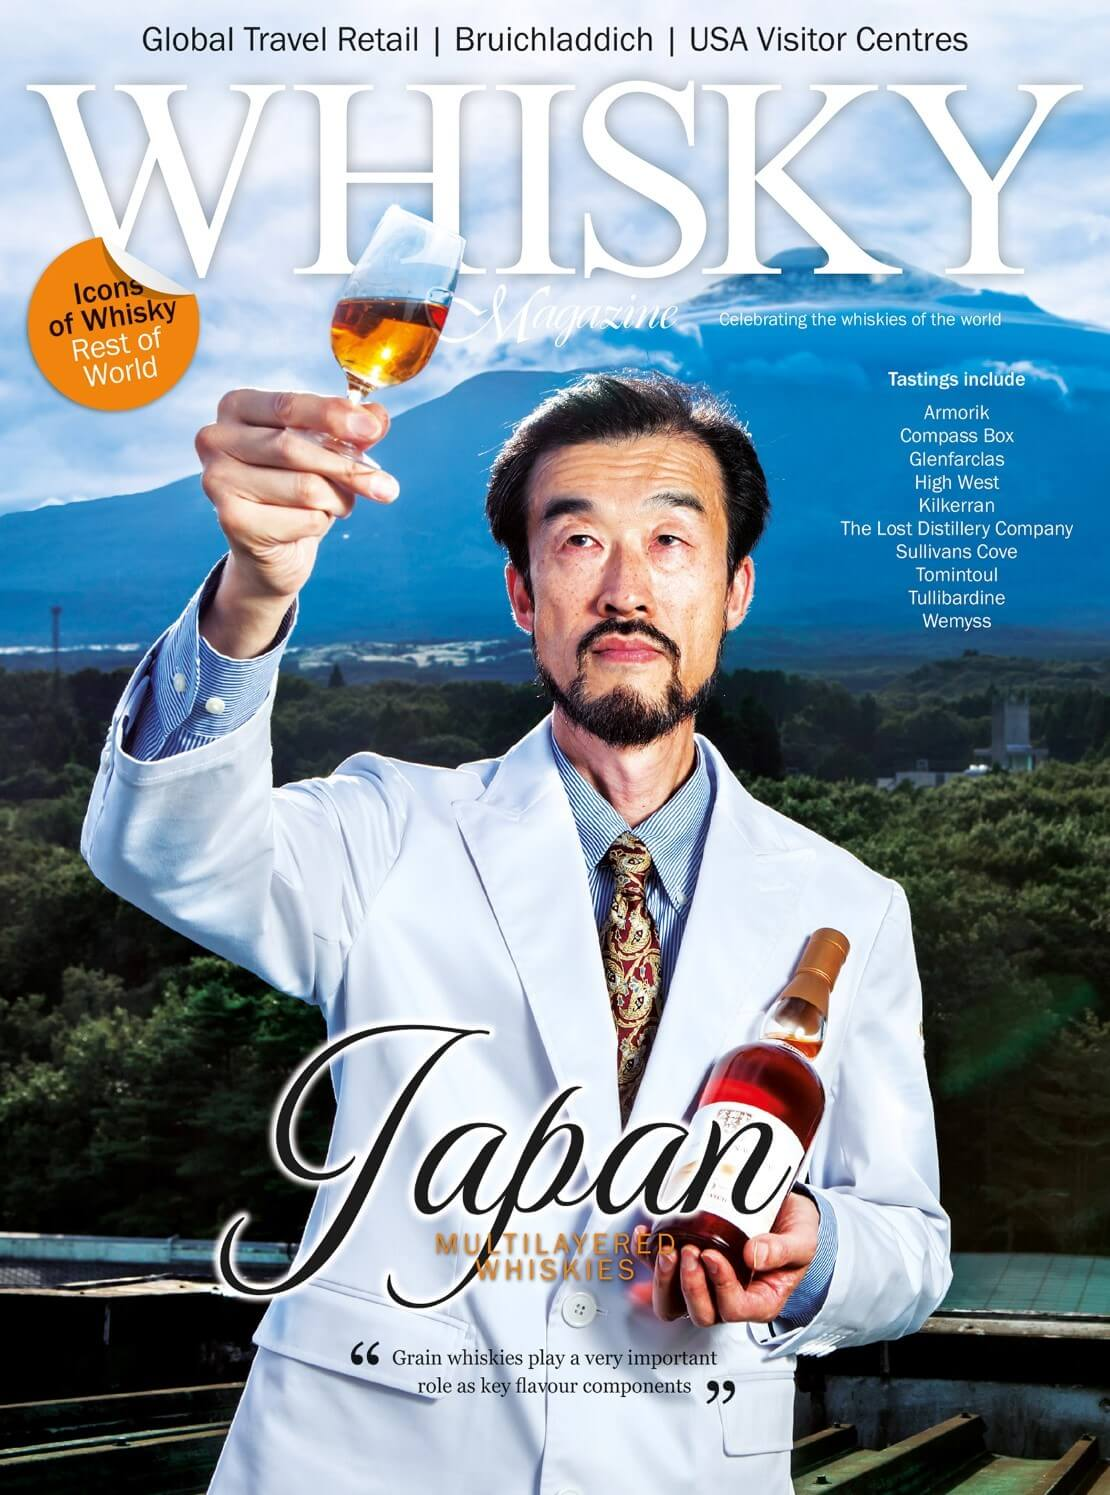 Fuji Gotemba Distillery Global Travel Retail special US visitor centres Icons of Whisky Rest of World